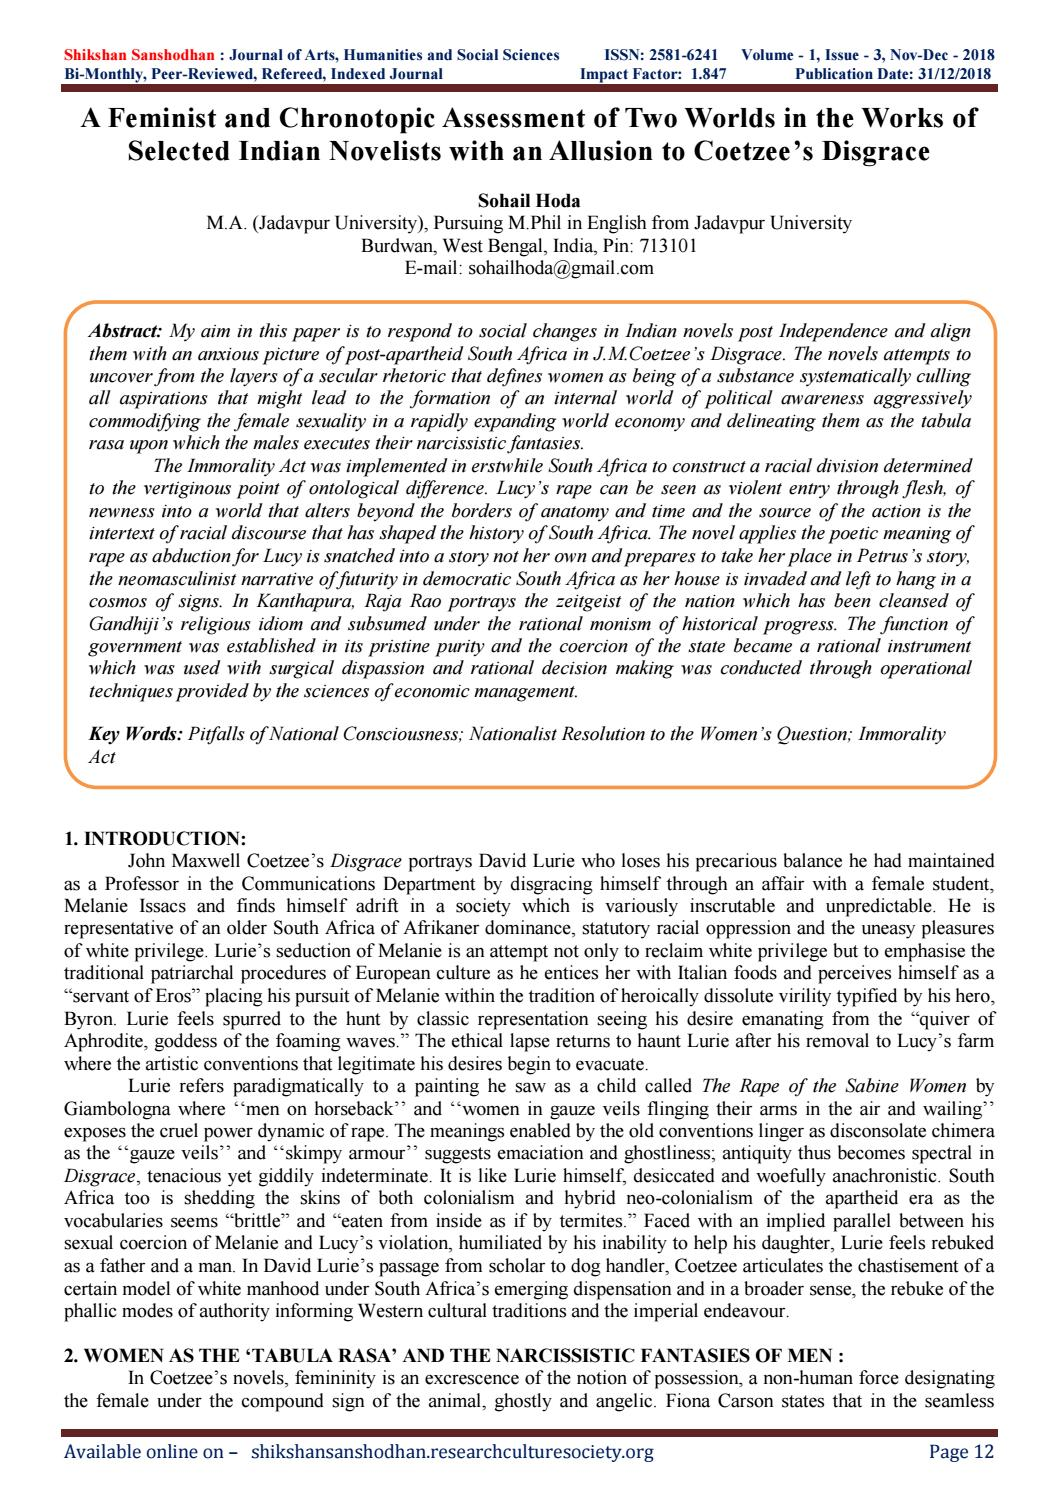 A Feminist and Chronotopic Assessment of Two Worlds in the